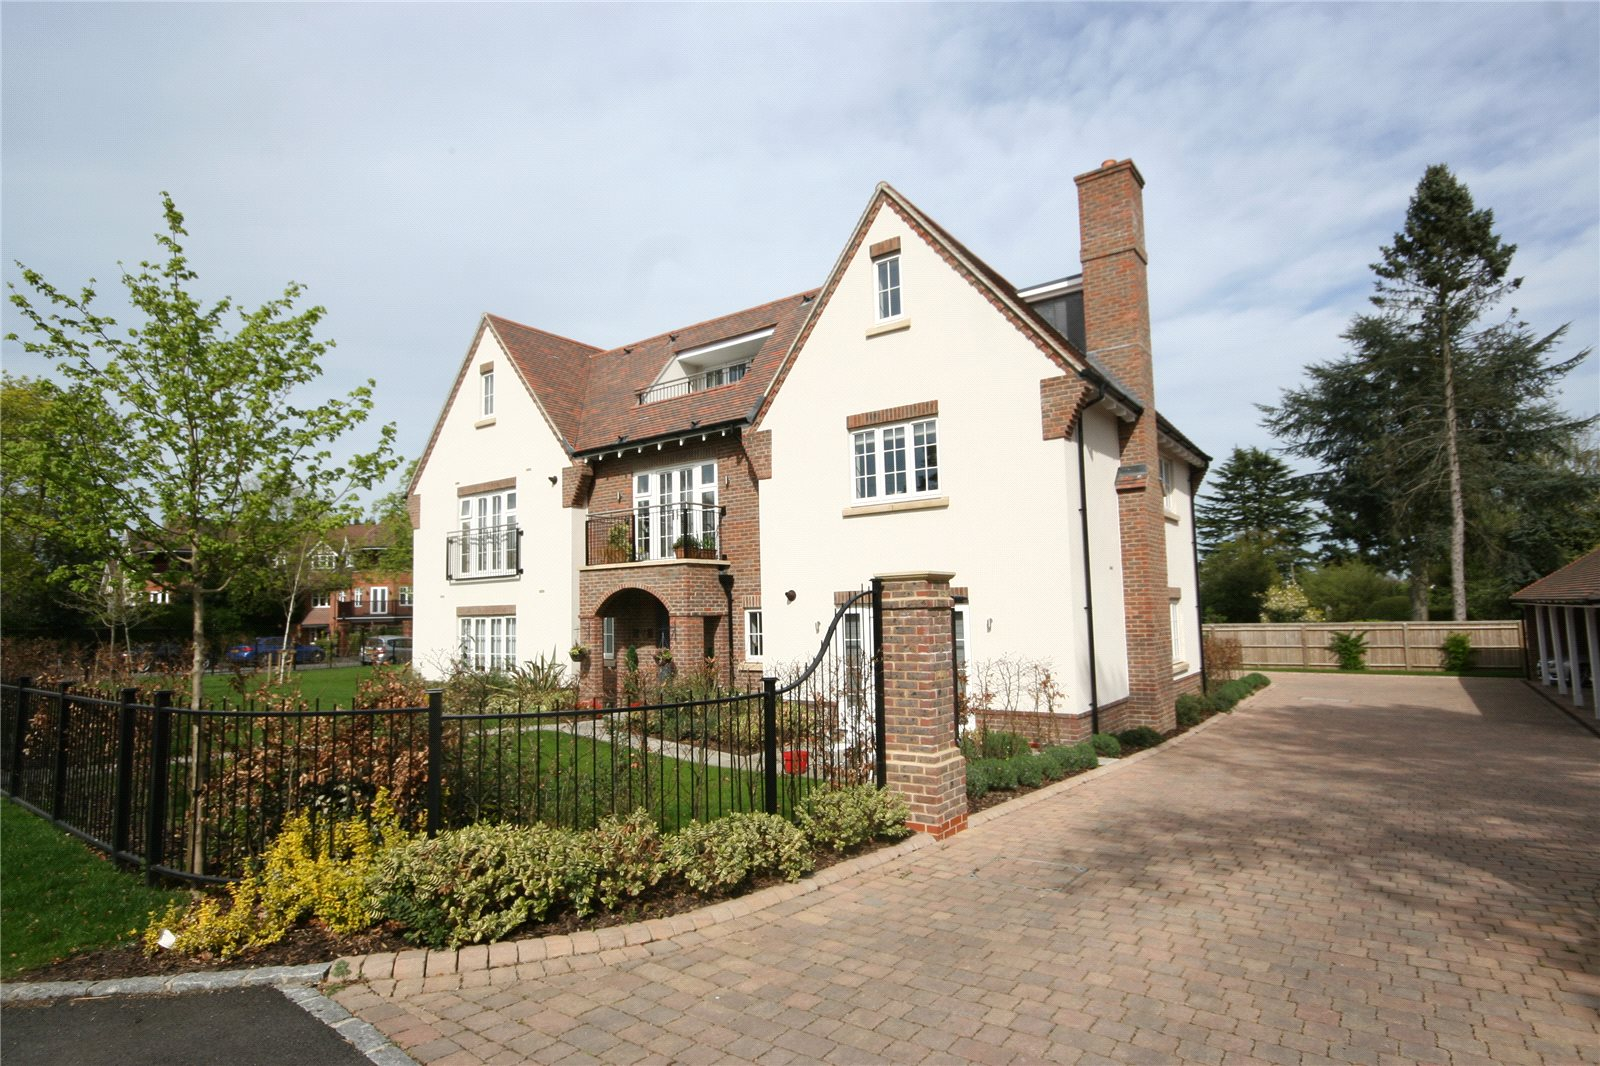 Additional photo for property listing at Aspin Lodge, 38 North Park, Gerrards Cross, Buckinghamshire, SL9 Gerrards Cross, England